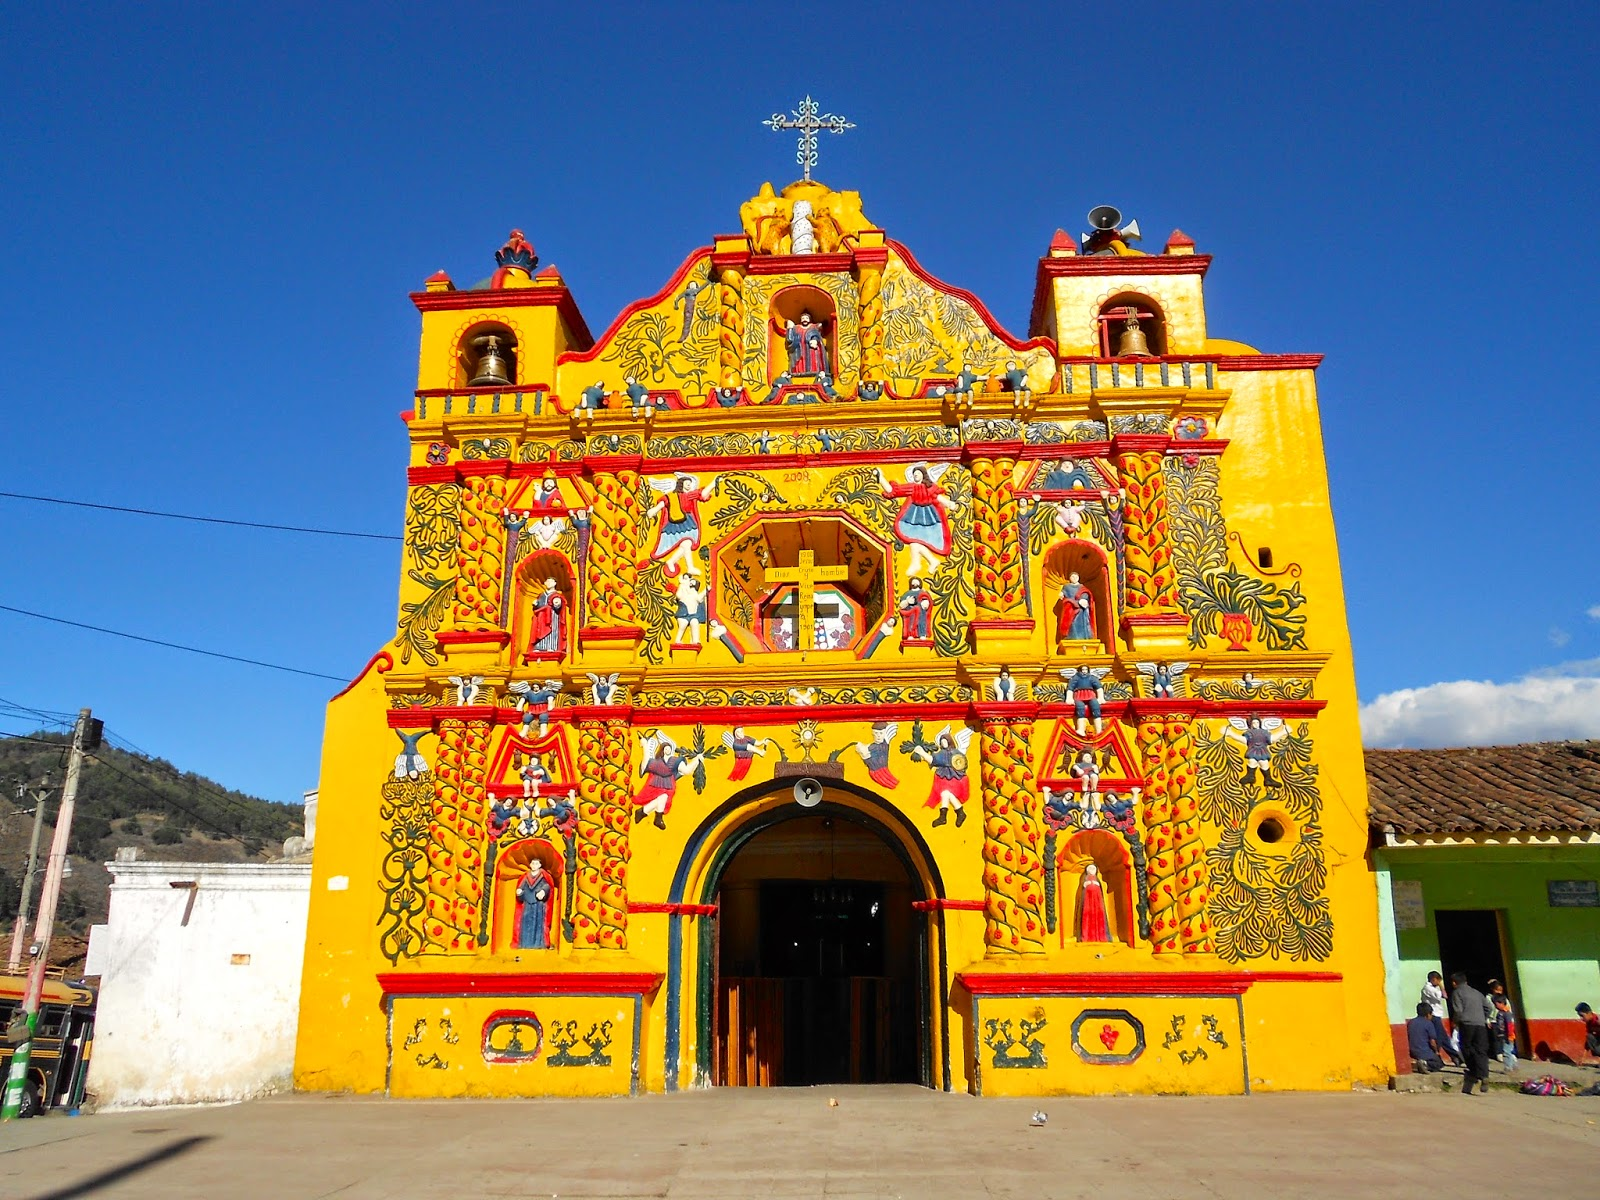 Colorful Guatemala, Quetzaltenango, San Andres Xecul Church